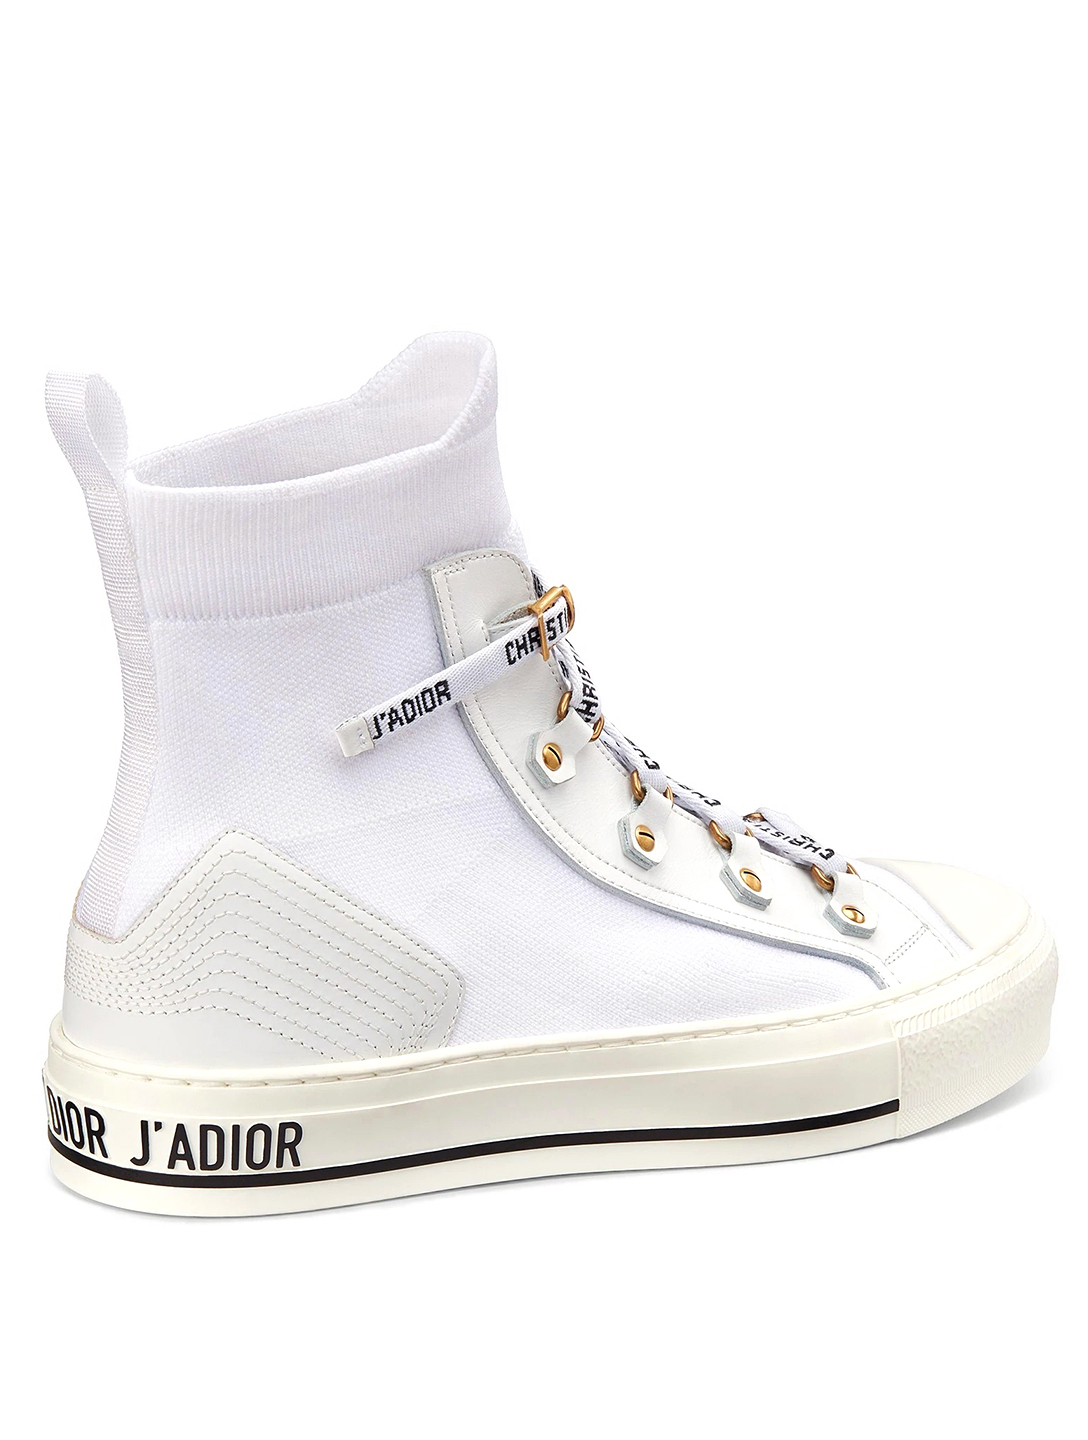 DIOR Walk'N'Dior Technical Knit High-Top Sneakers Women's White